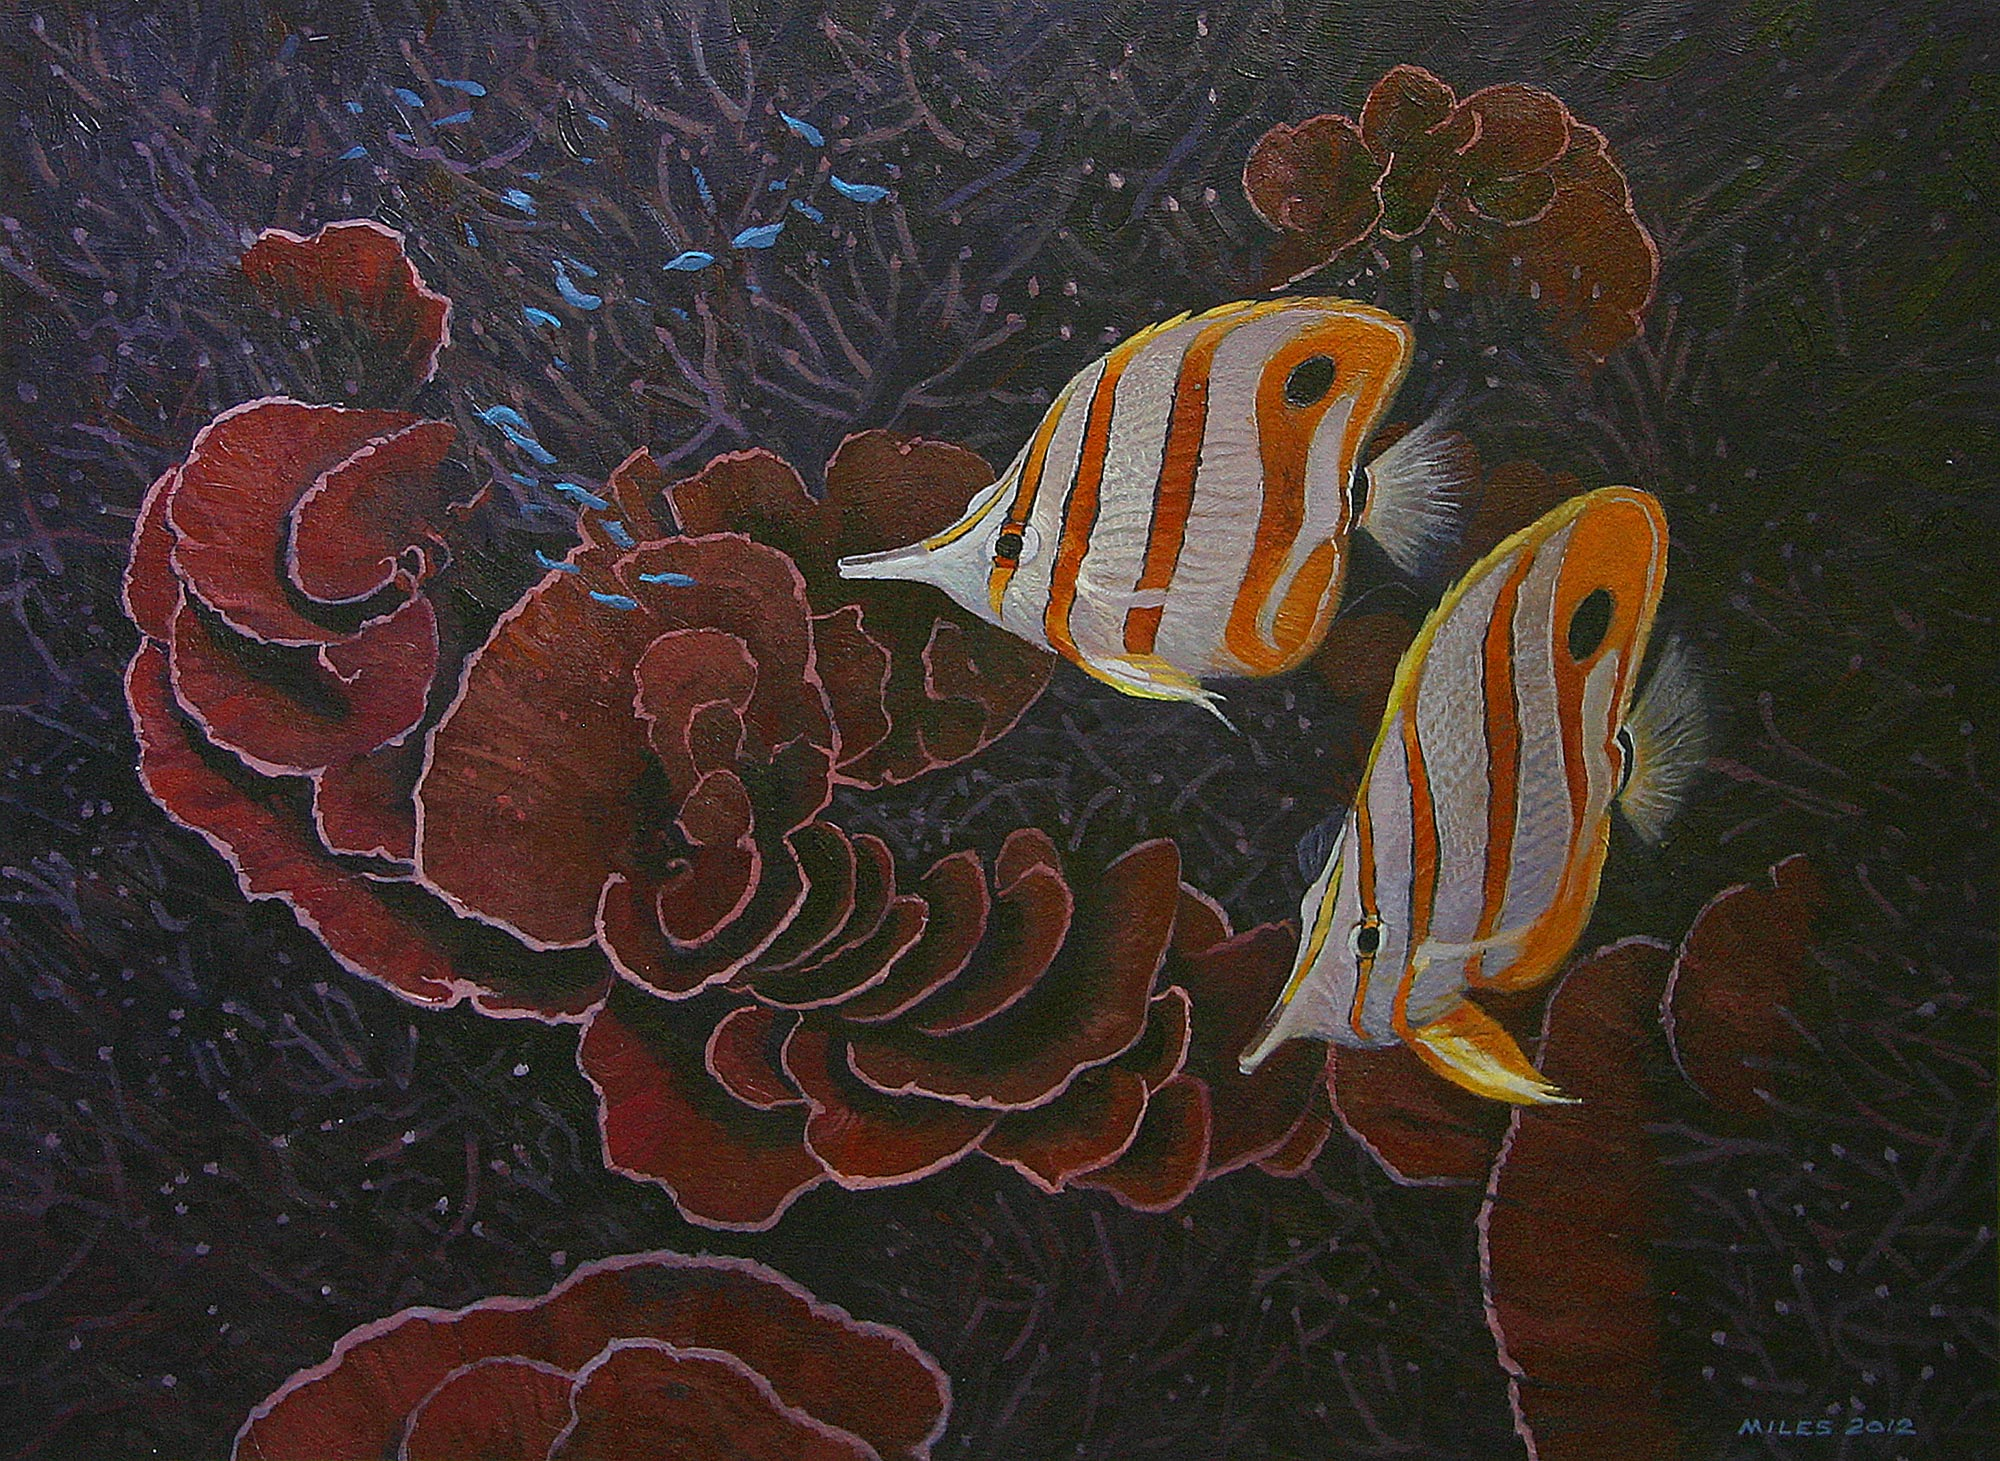 Gerry_Miles_divepaint_underwater_paintings_Copper_Banded_Butterfly_Fishes.jpg